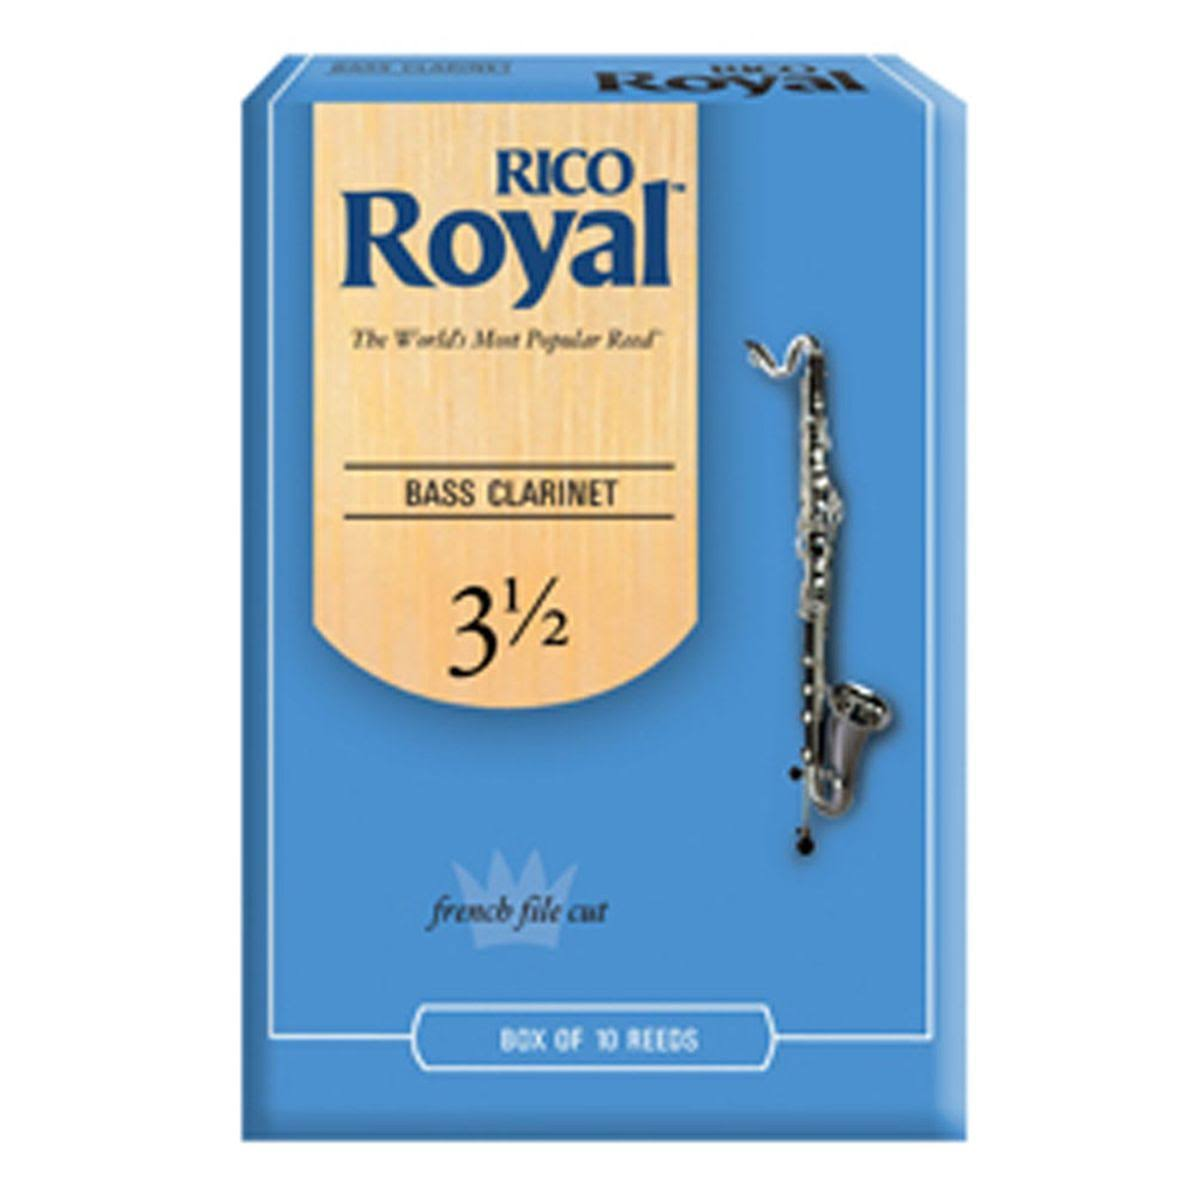 Rico Royal Bass Clarinet Reeds - Box of 10, Strength 3.5